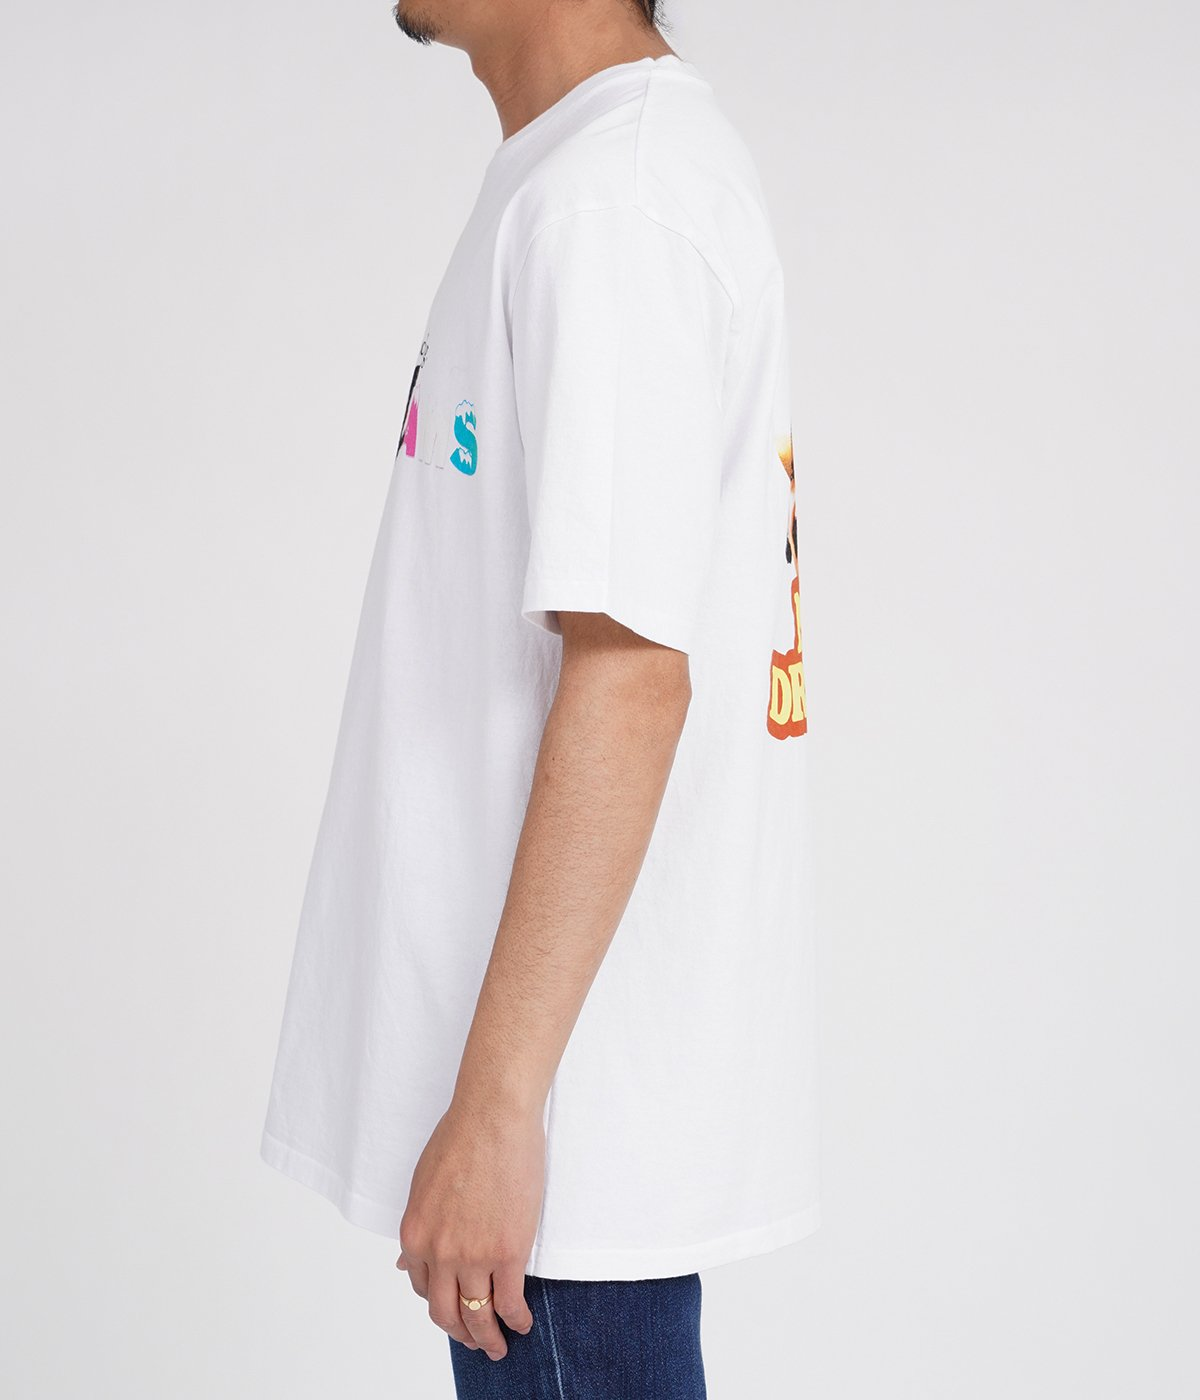 NICE DREAMS / WASHED HEAVY WEIGHT CREW NECK T-SHIRT ( TYPE-3 )